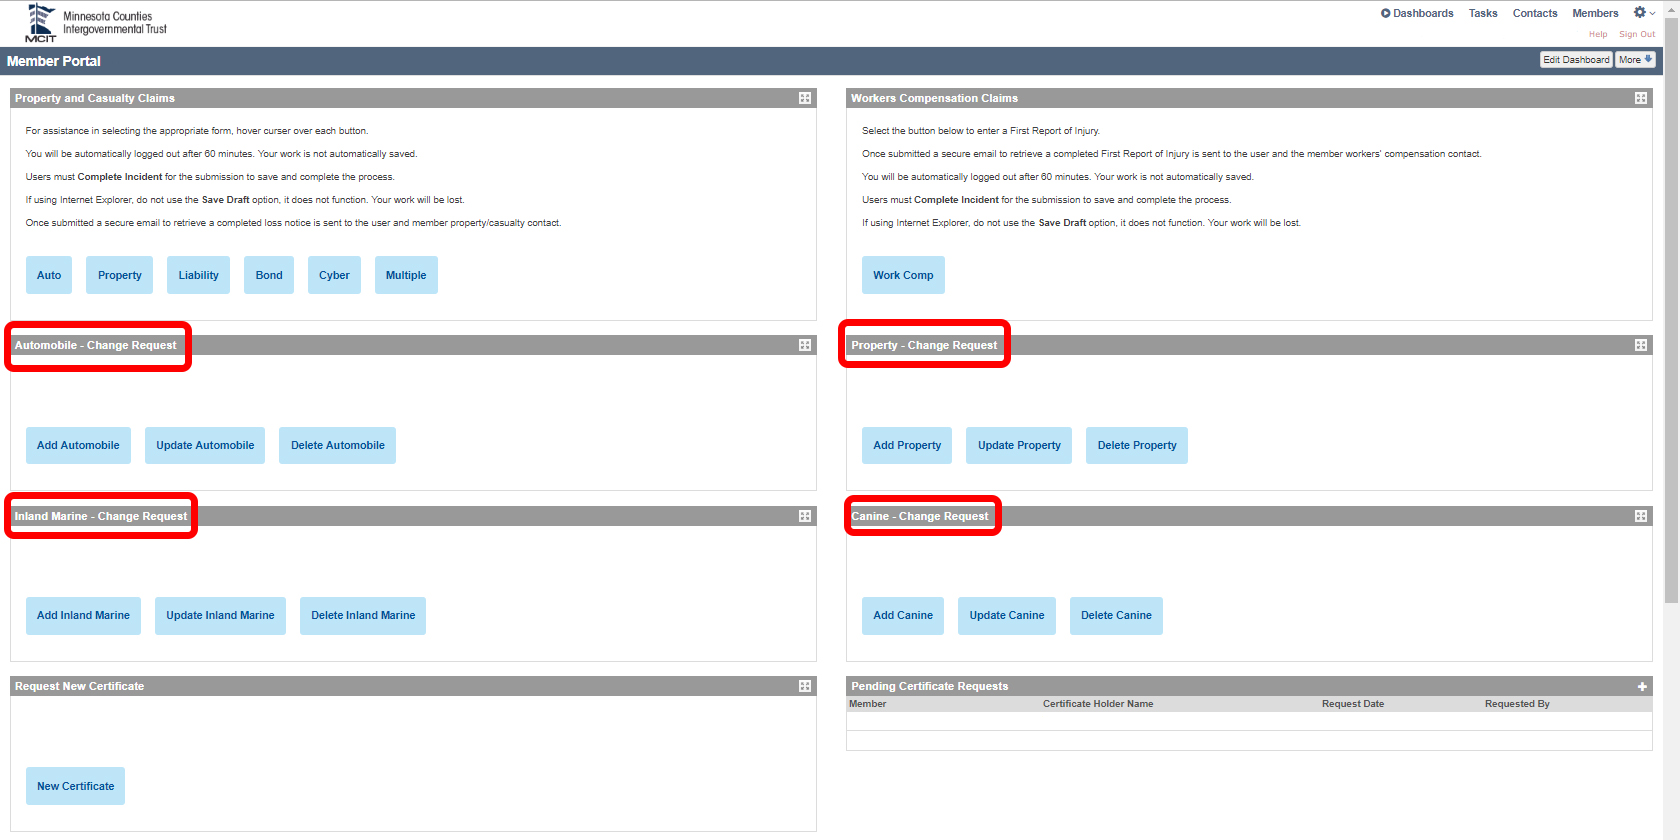 Screen shot of MCIT member portal with areas to access coverage change request forms highlighted with red boxes.